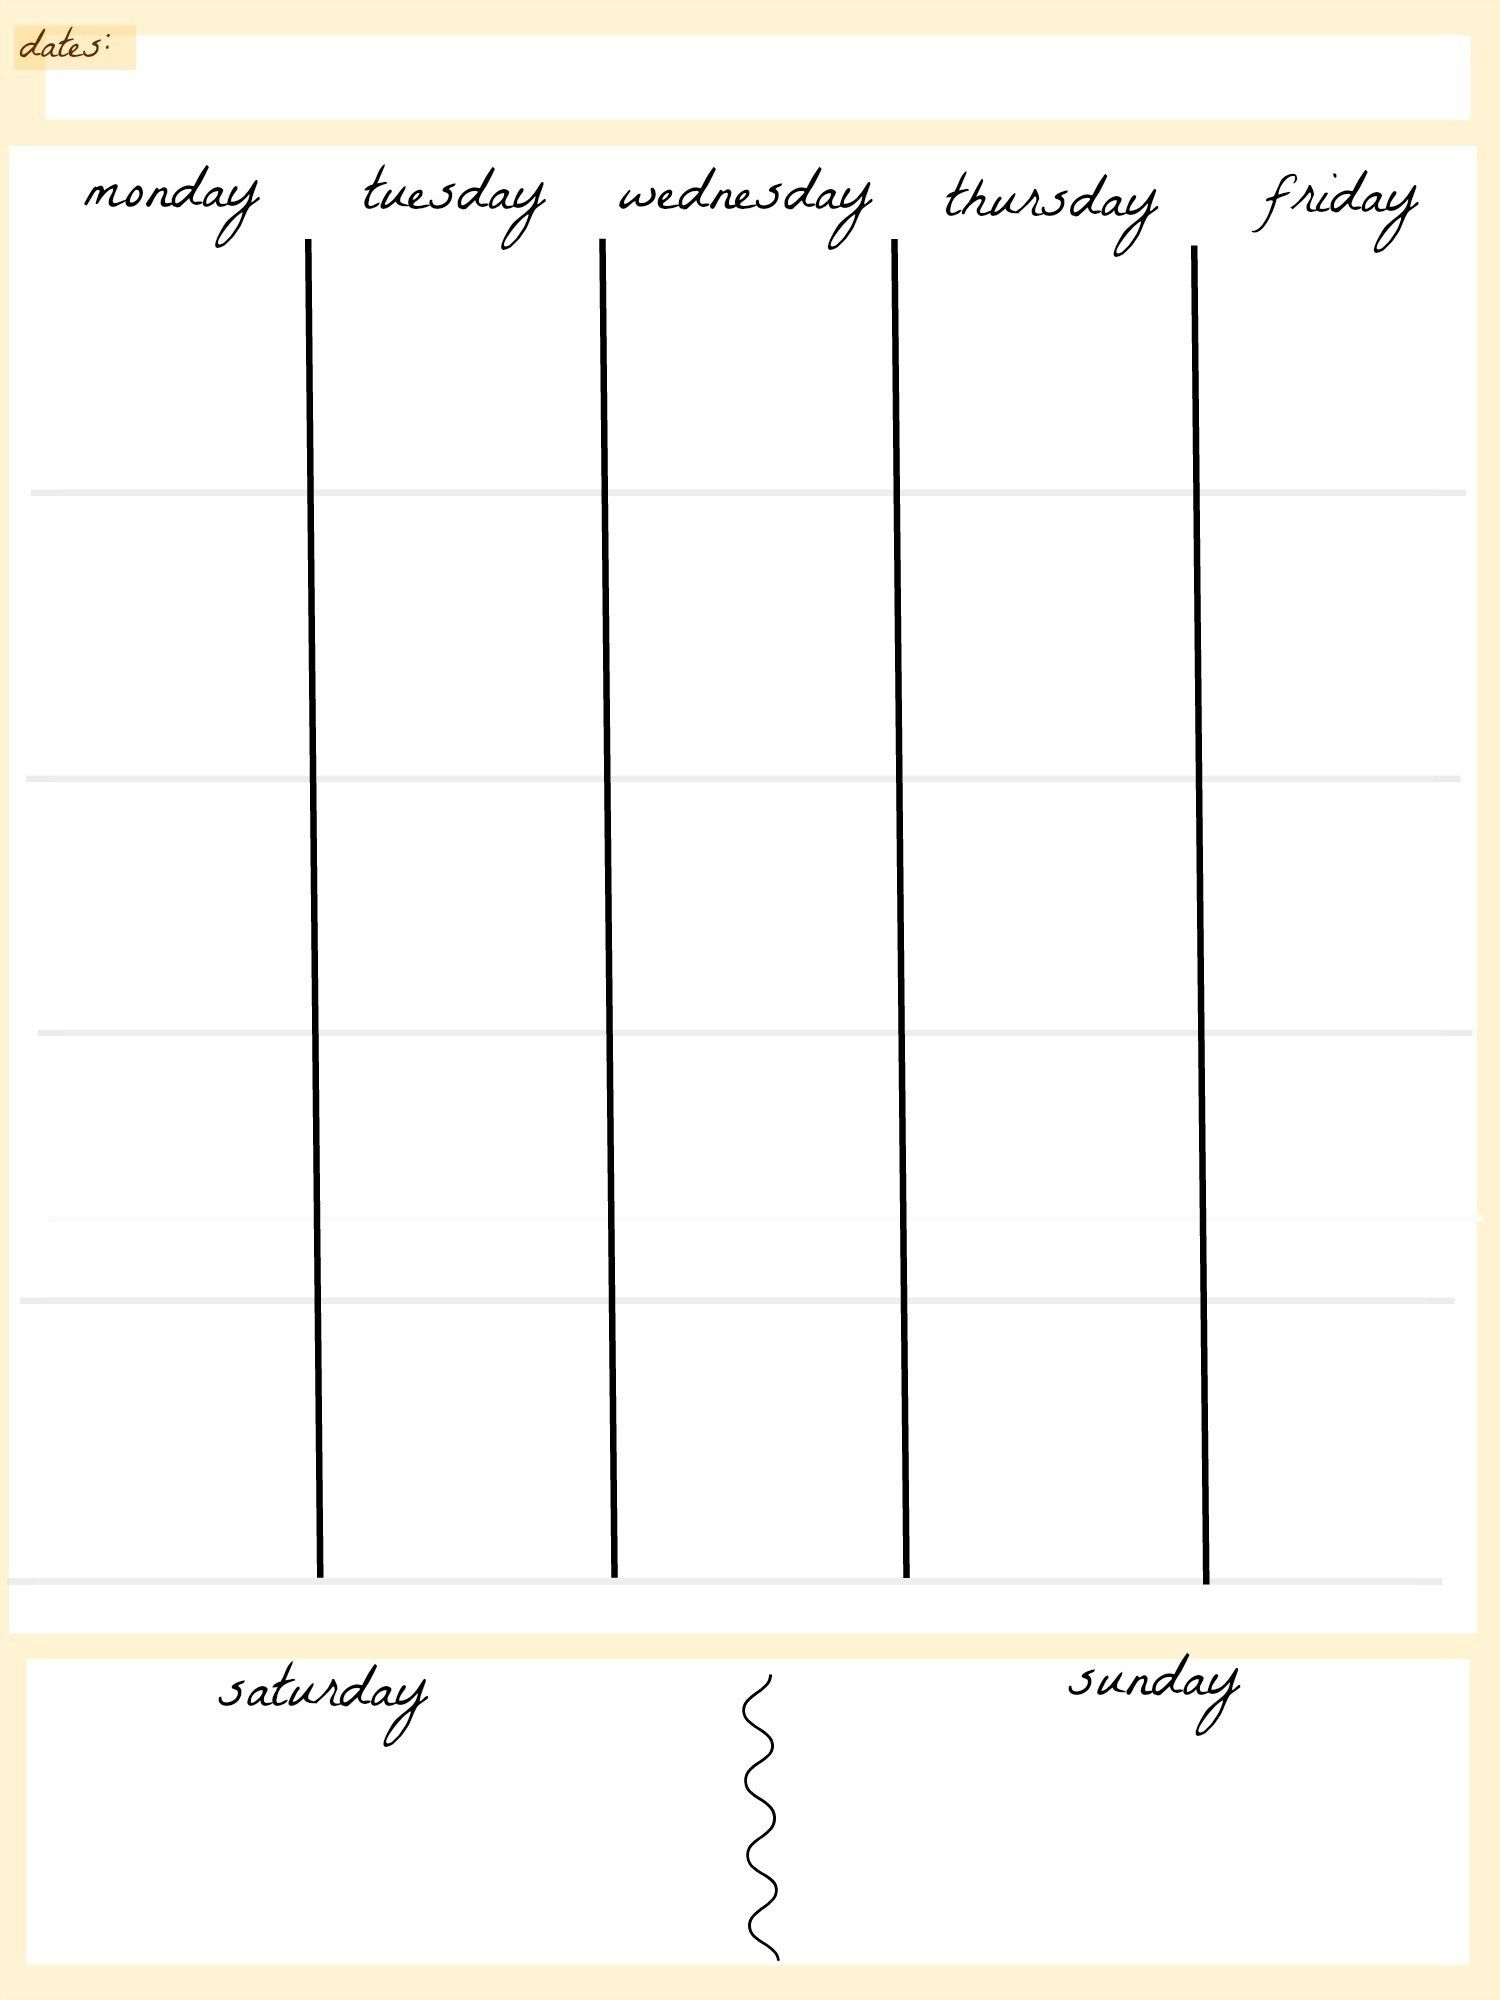 Pincalendar Printable Gee On New Calendar Printable